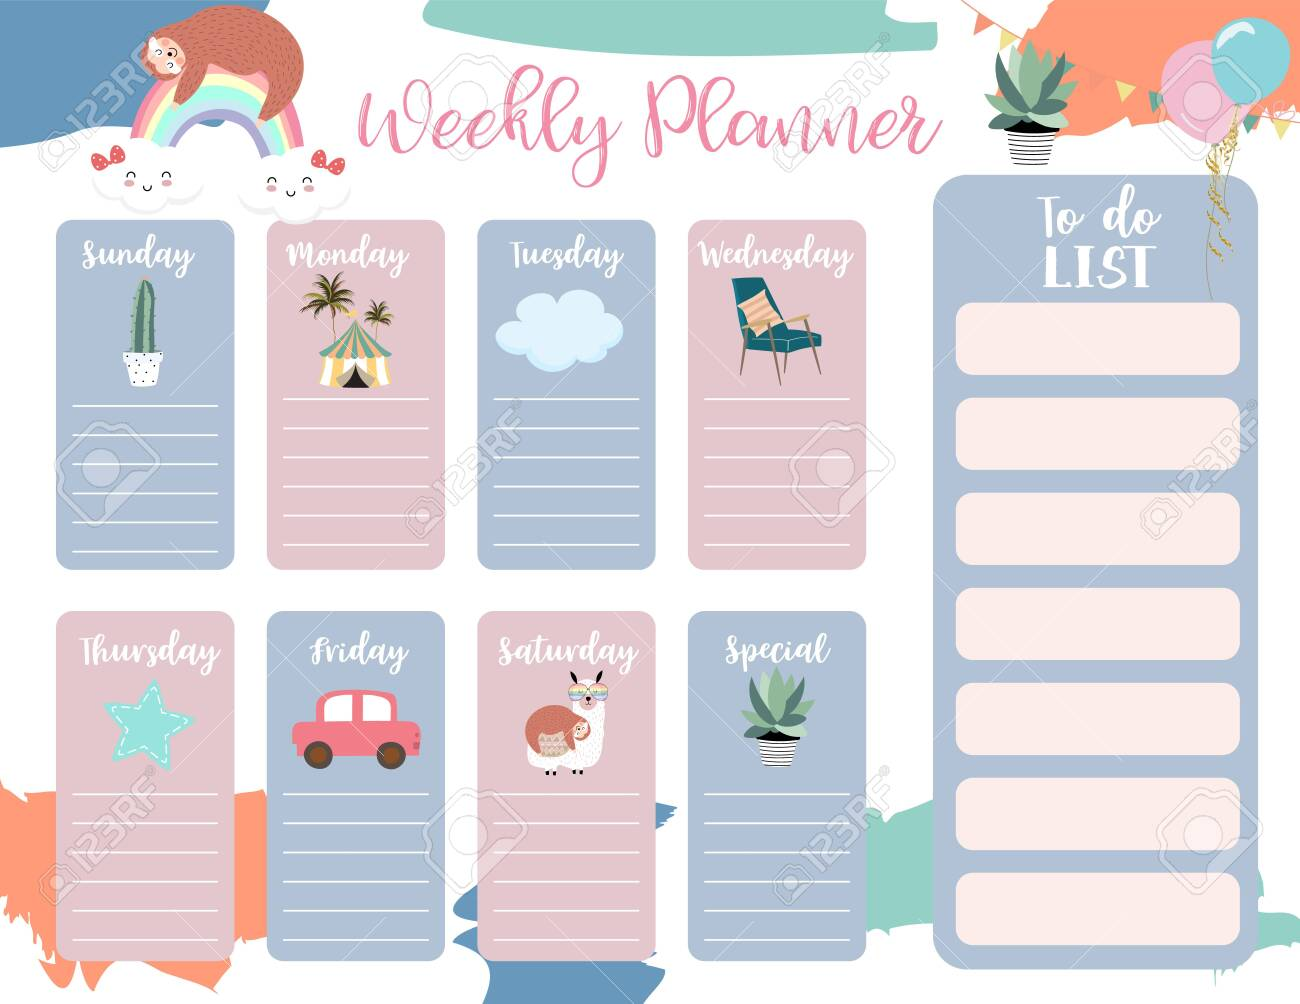 cute weekly planner background with sloth,rainbow,llama,cloud.Vector illustration for kid and baby.Editable element - 133238217